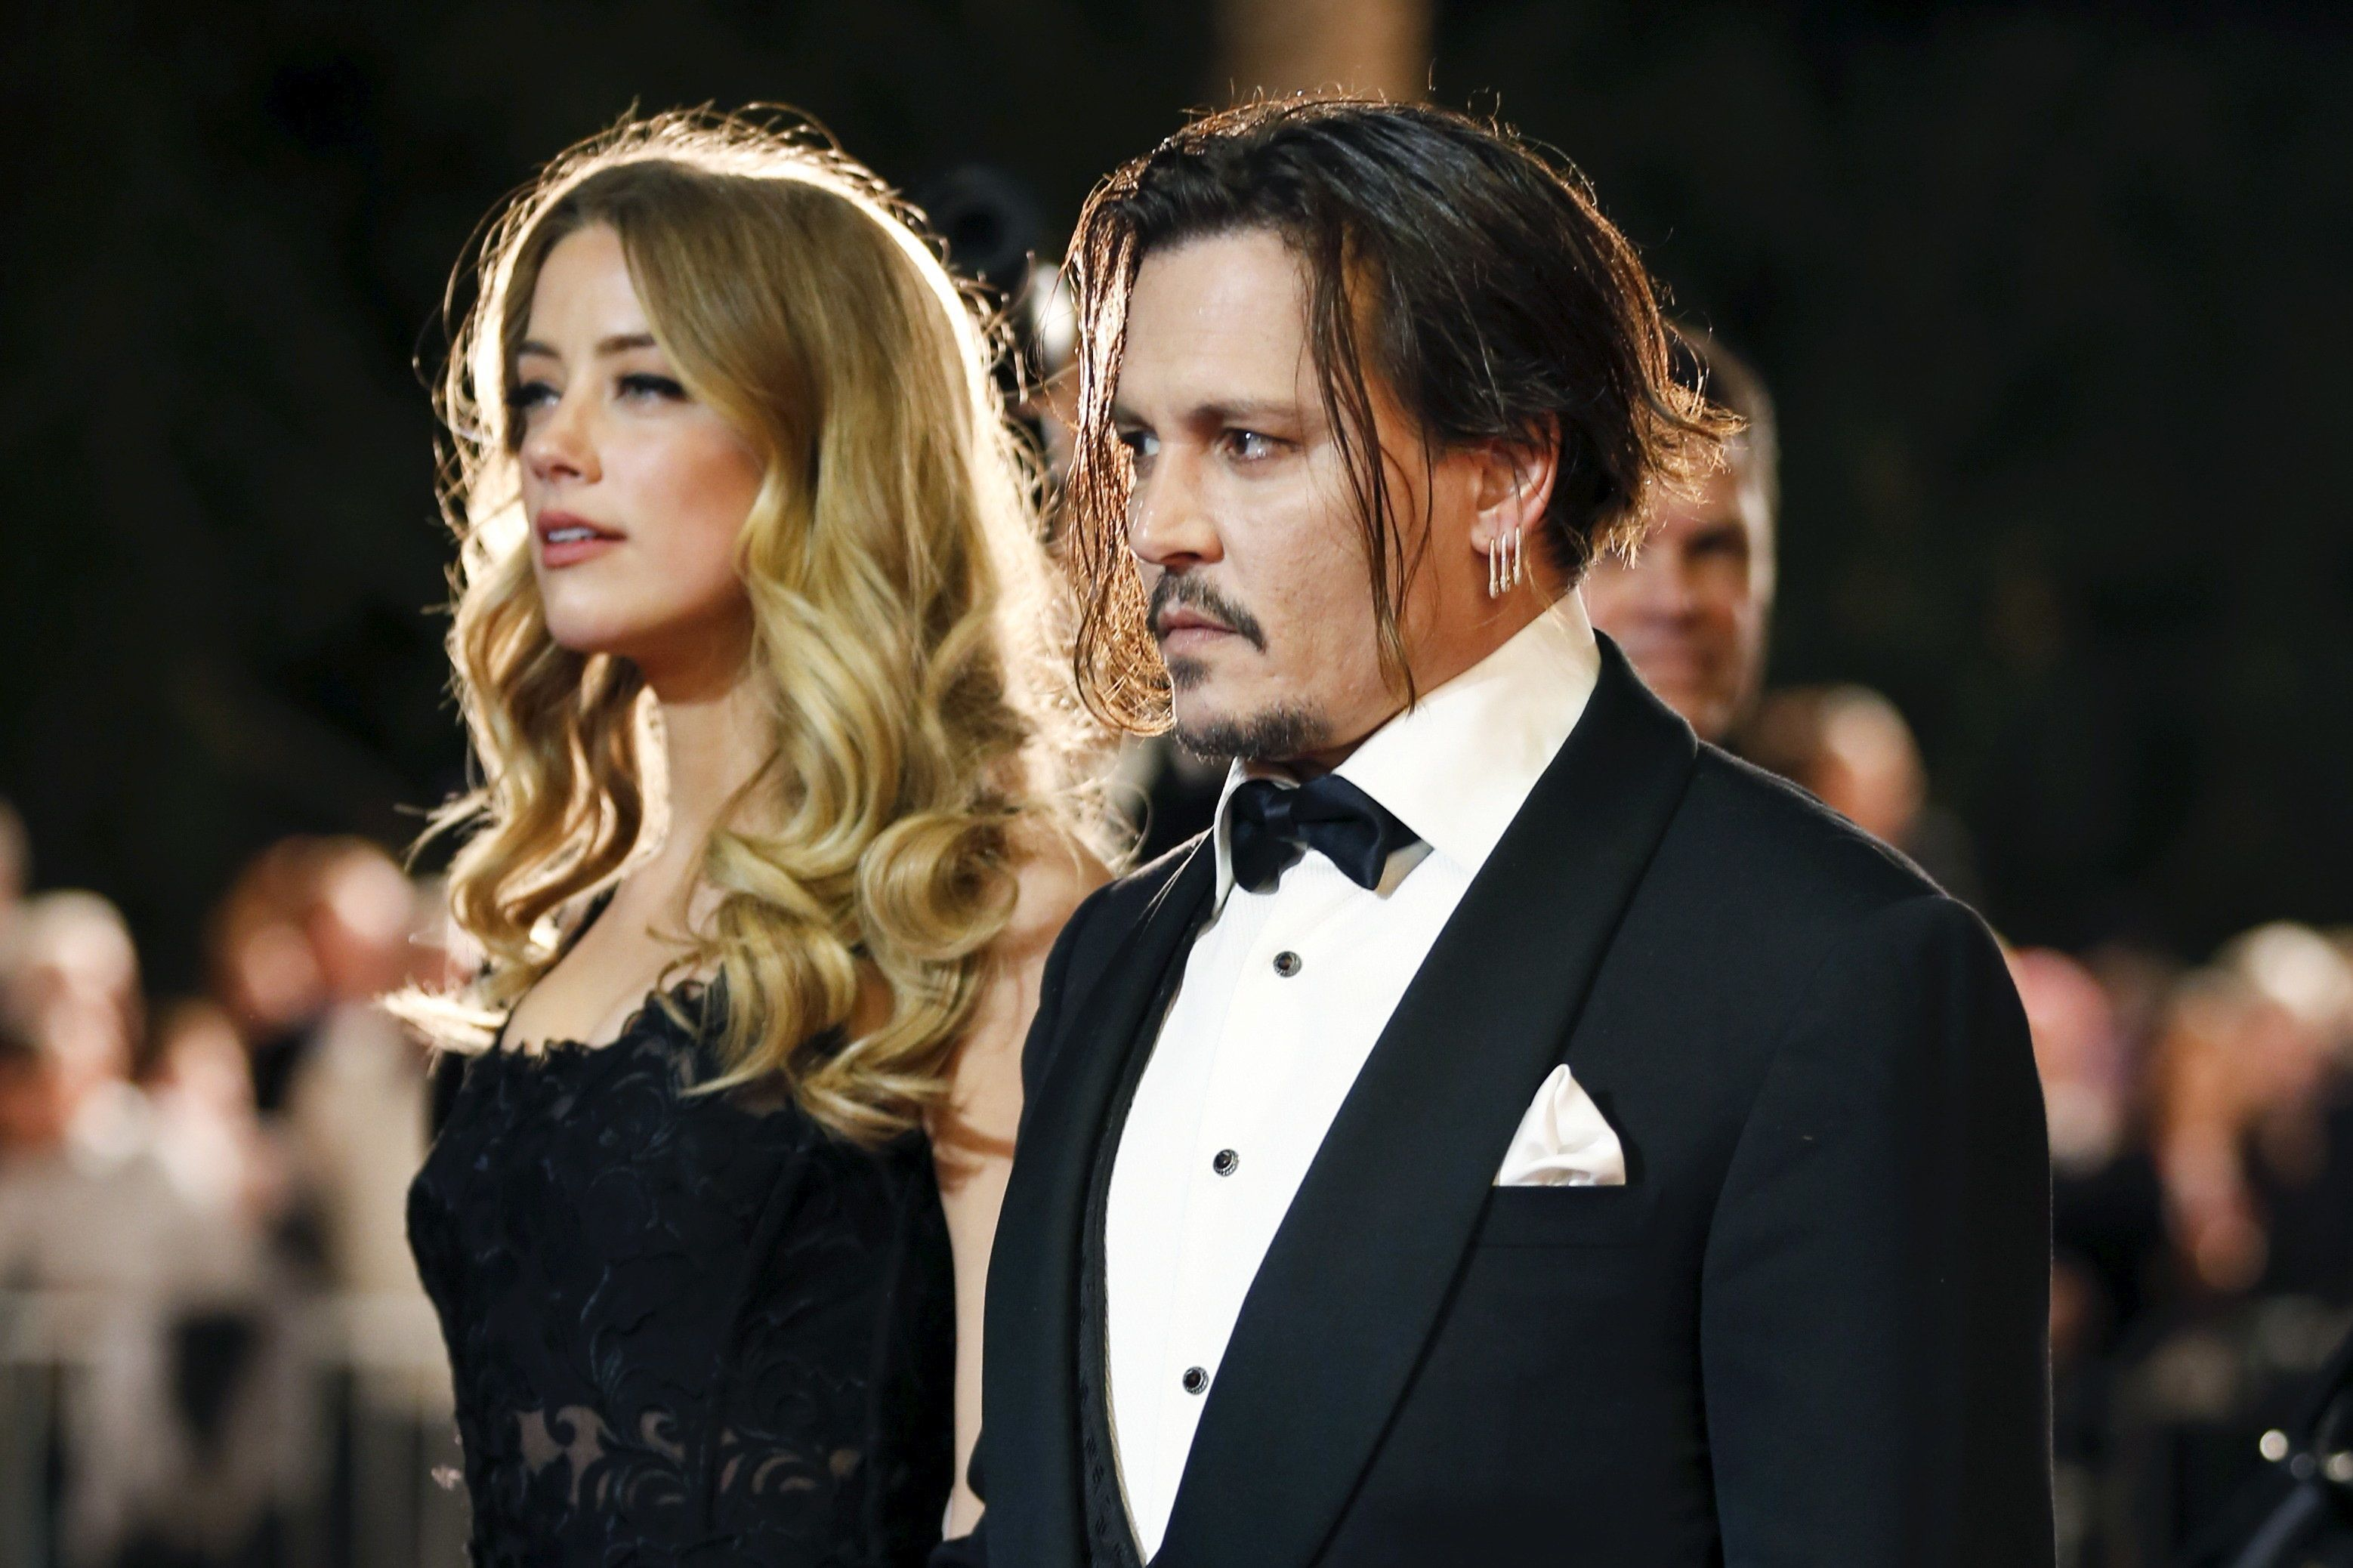 Things Take A Grisly Turn In The Depp/Heard Divorce